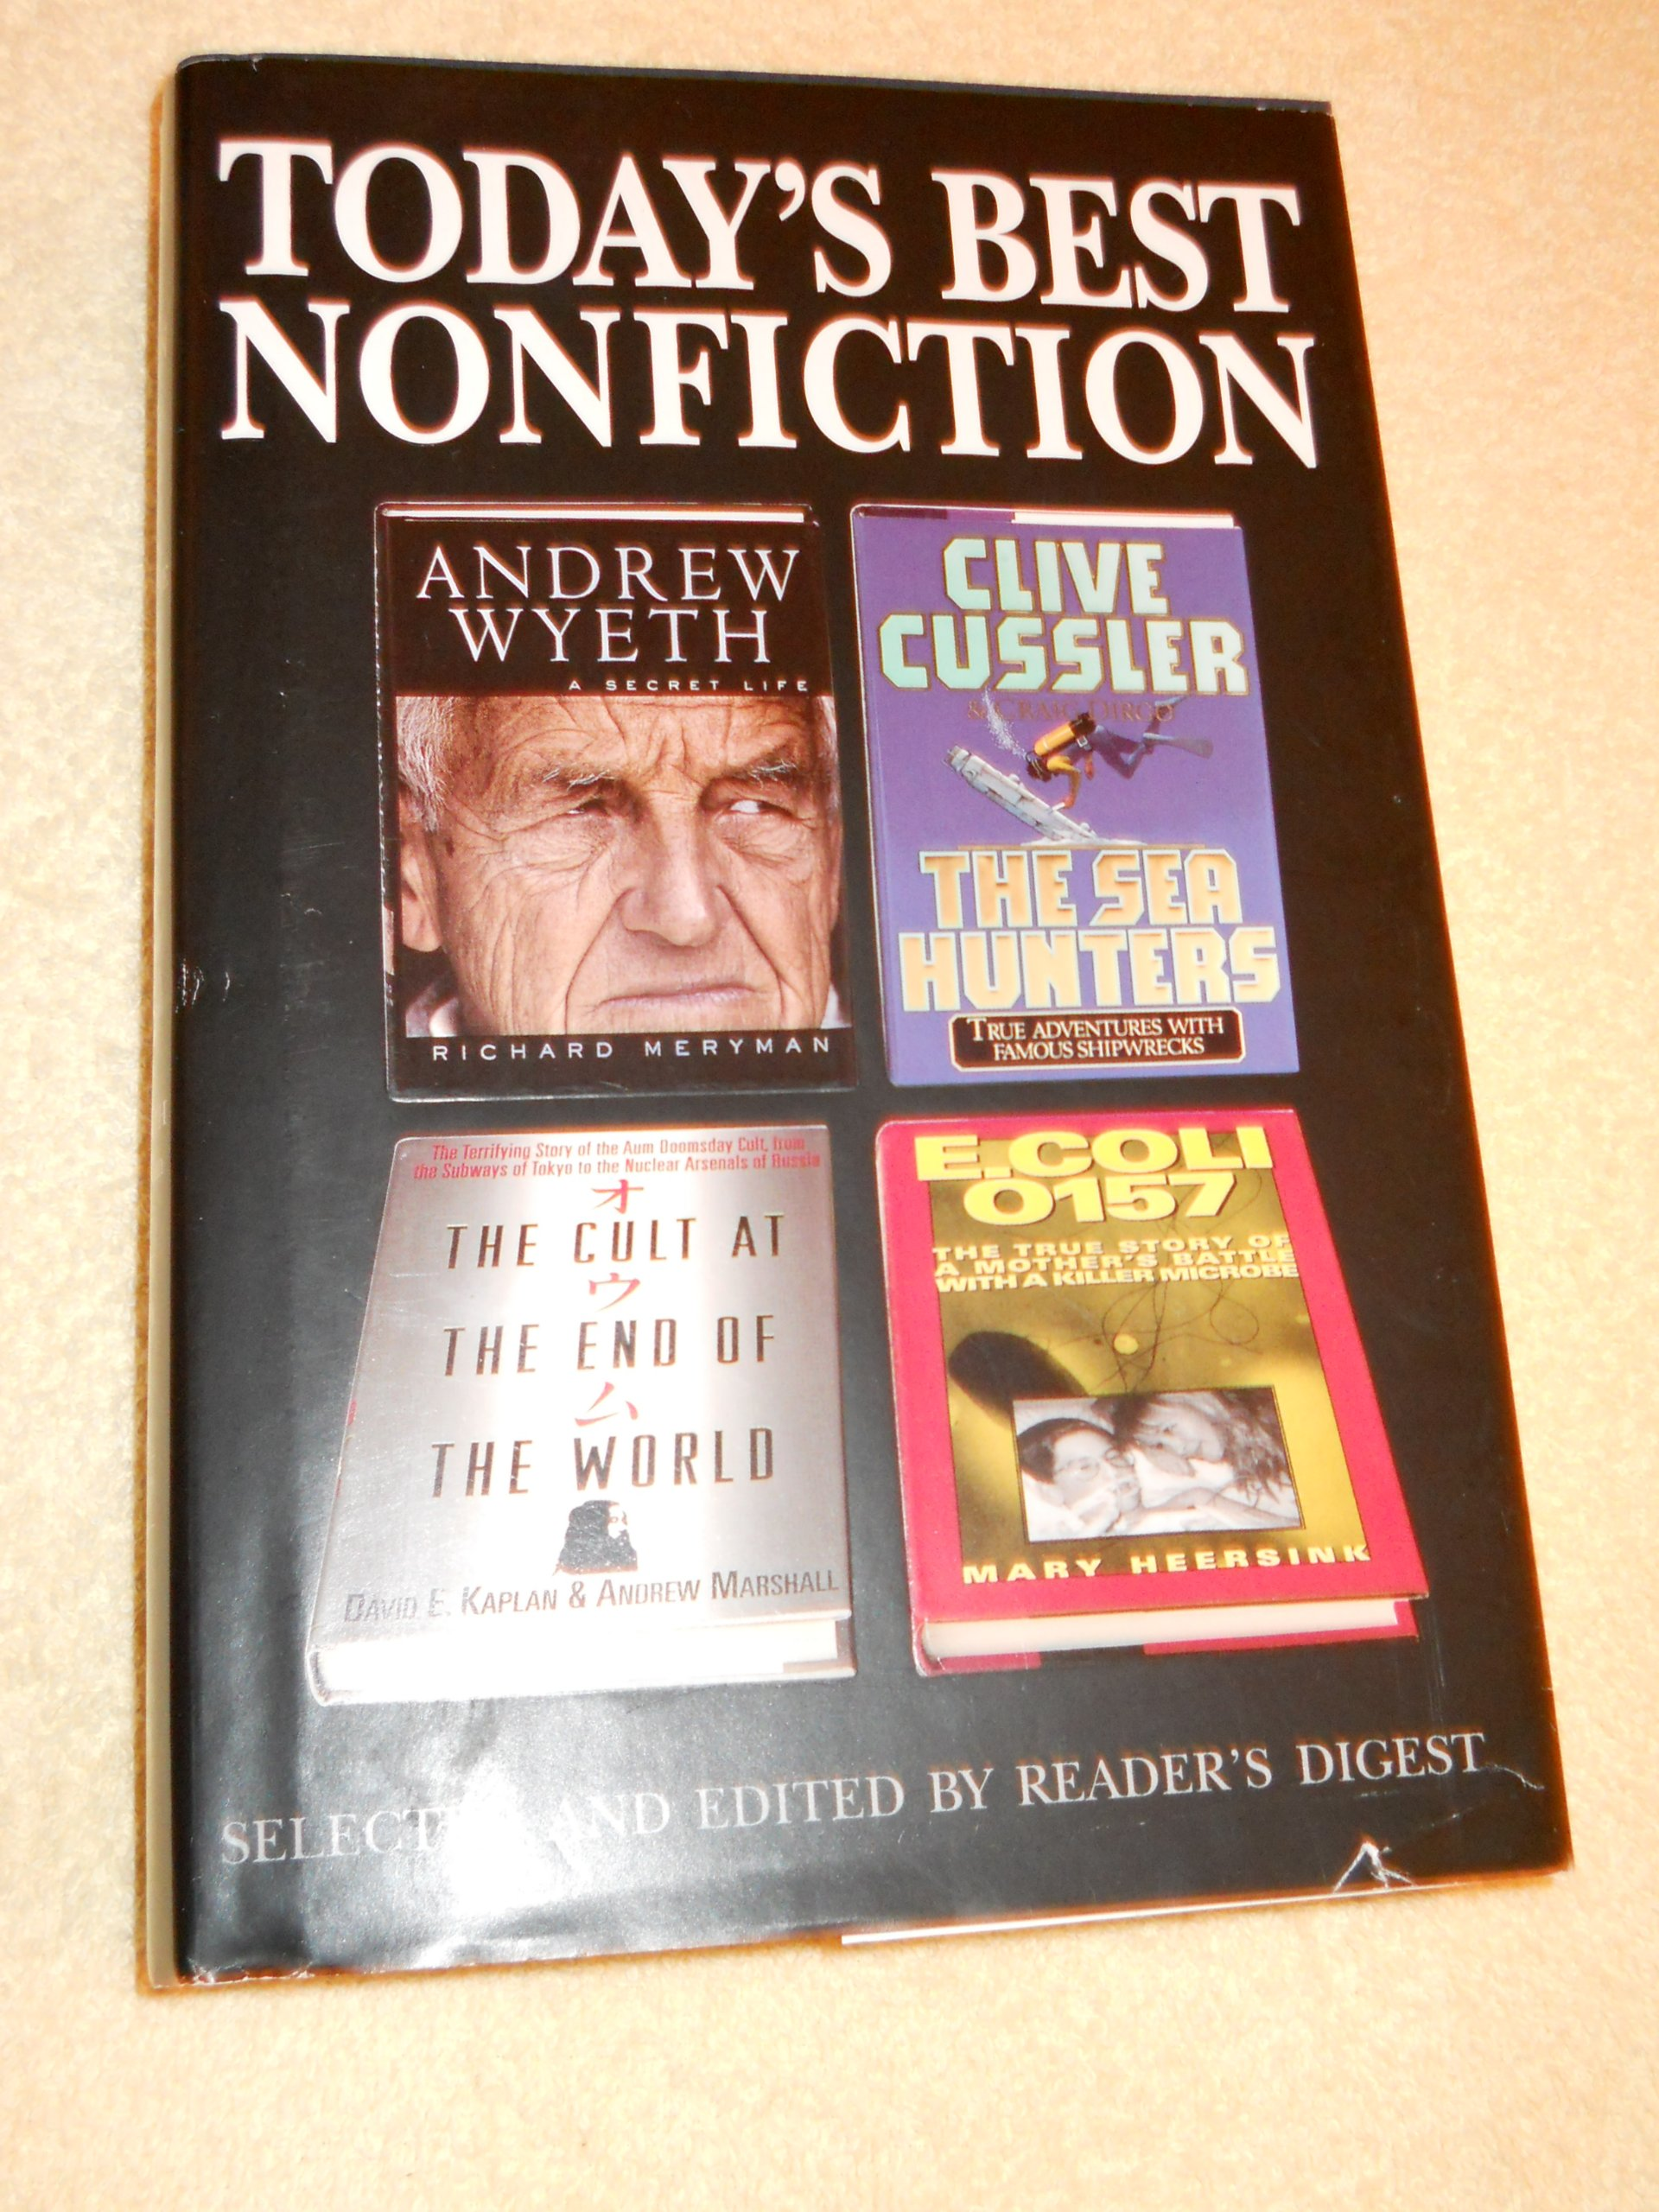 andrew wyeth a secret life the sea hunters the cult at the end of the world e coli 0157 readers digest todays best nonfiction volume 42 1997